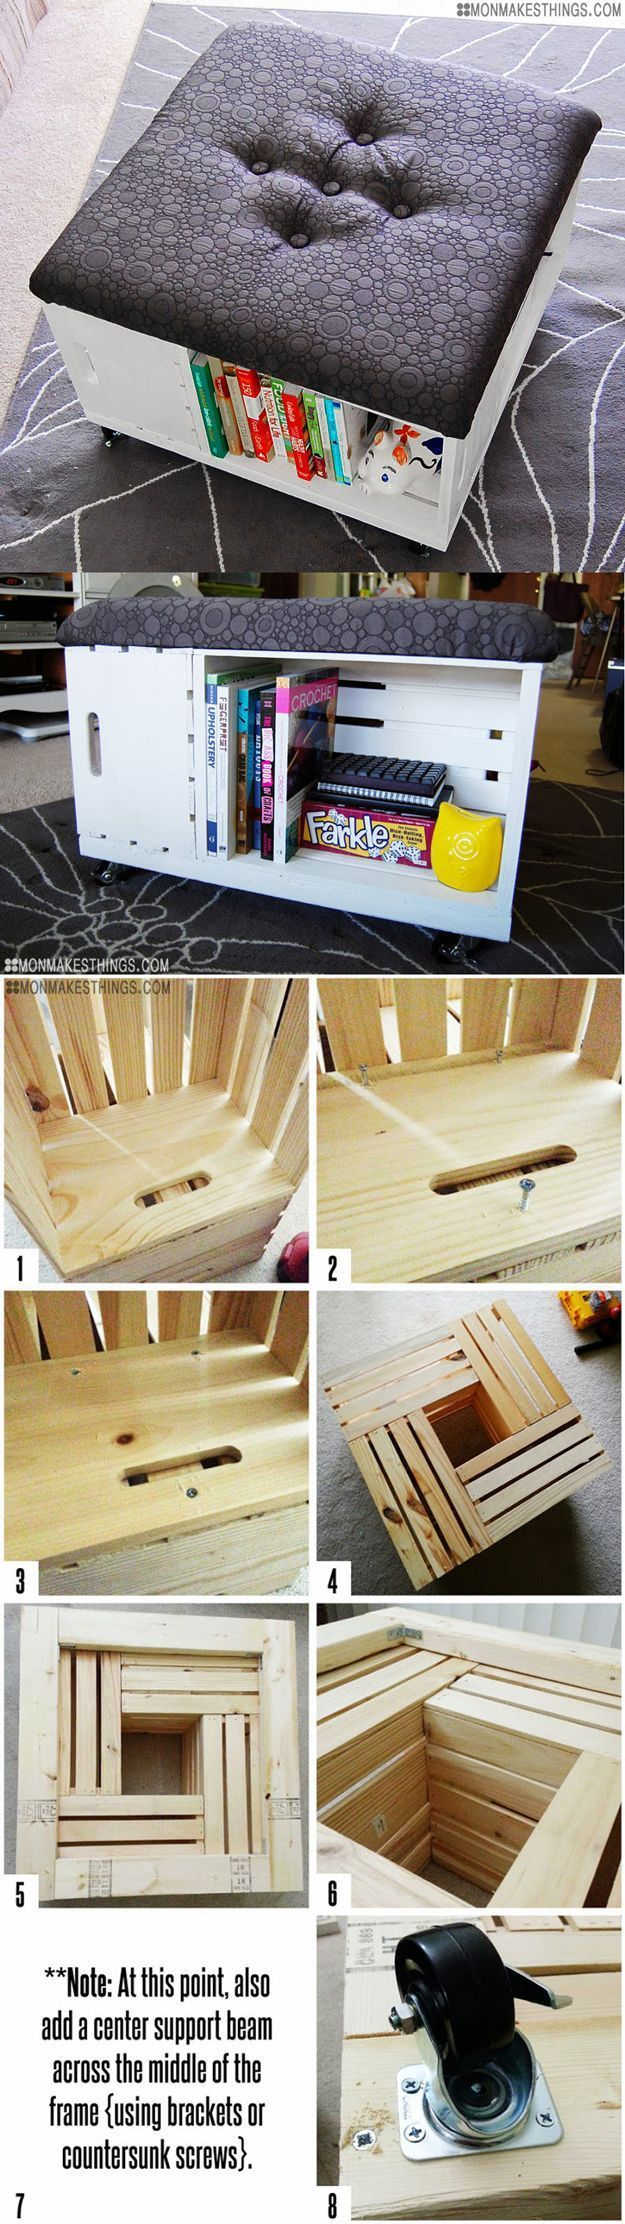 DIY Storage Ottoman   Simple and Fun DIY Home Decor Tutorial for Renters by DIY Ready at  http://diyready.com/diy-room-decor-ideas-for-renters/